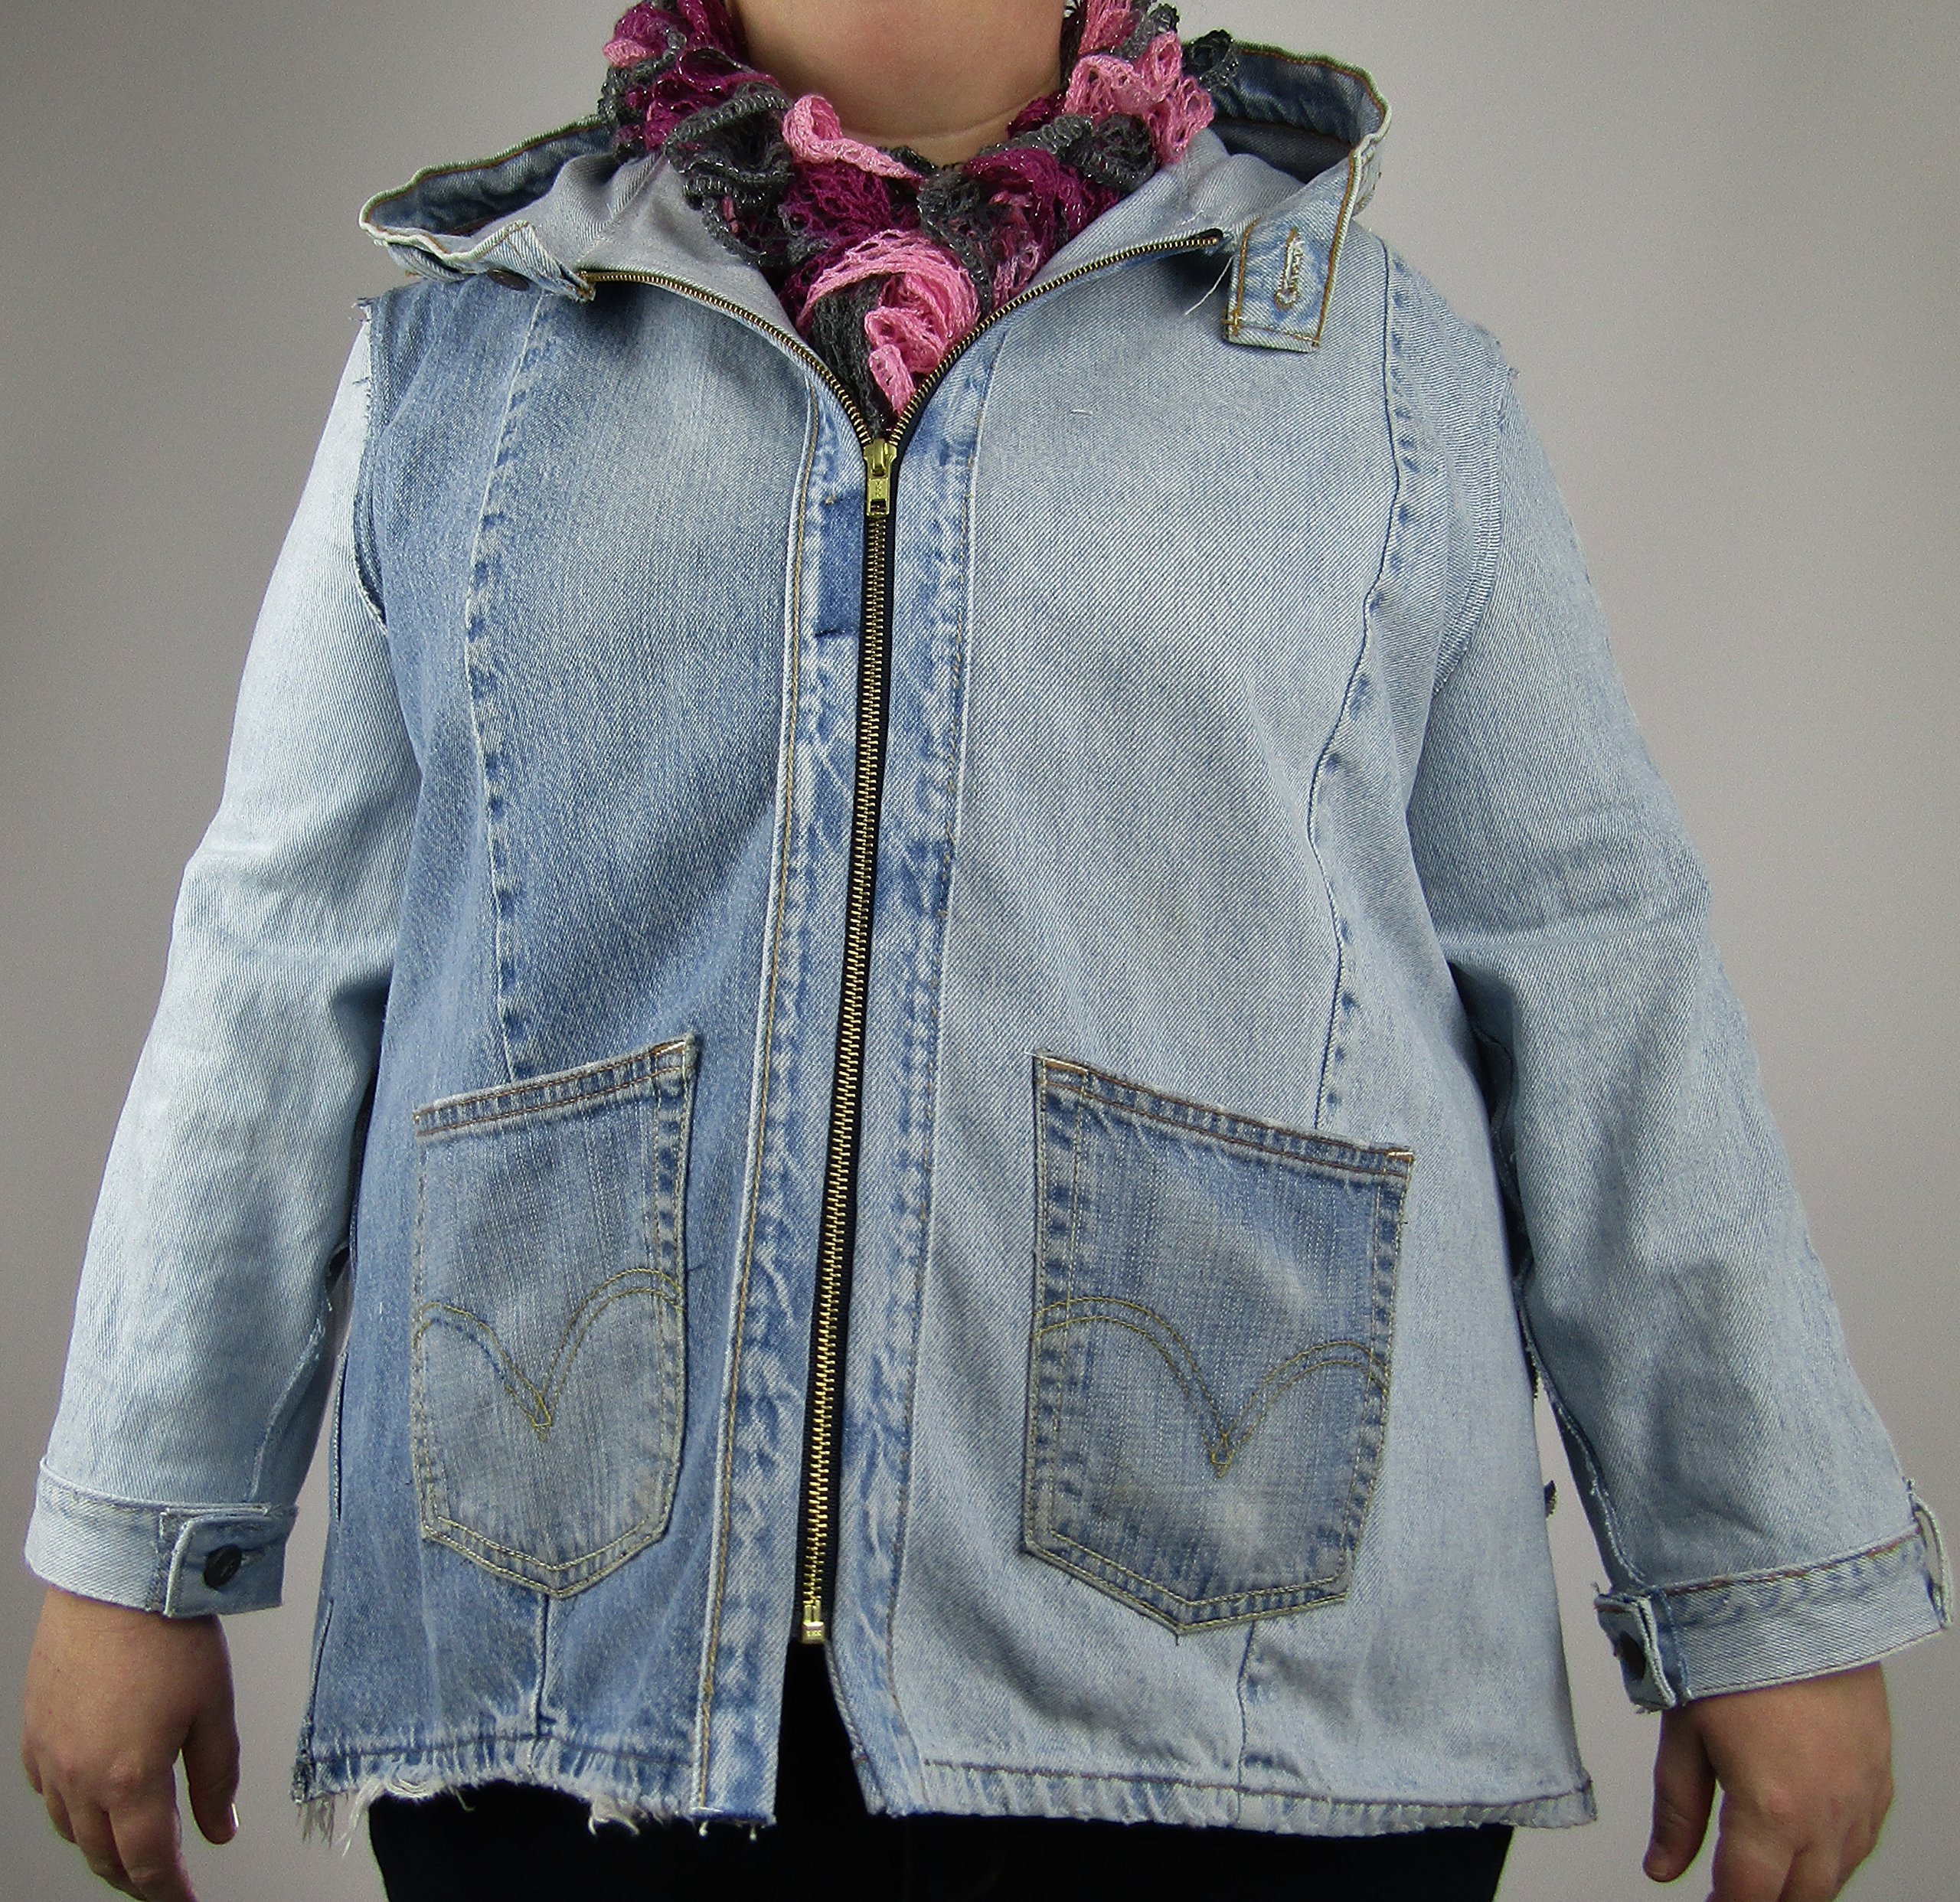 Hooded Denim Jacket XL made from jeans